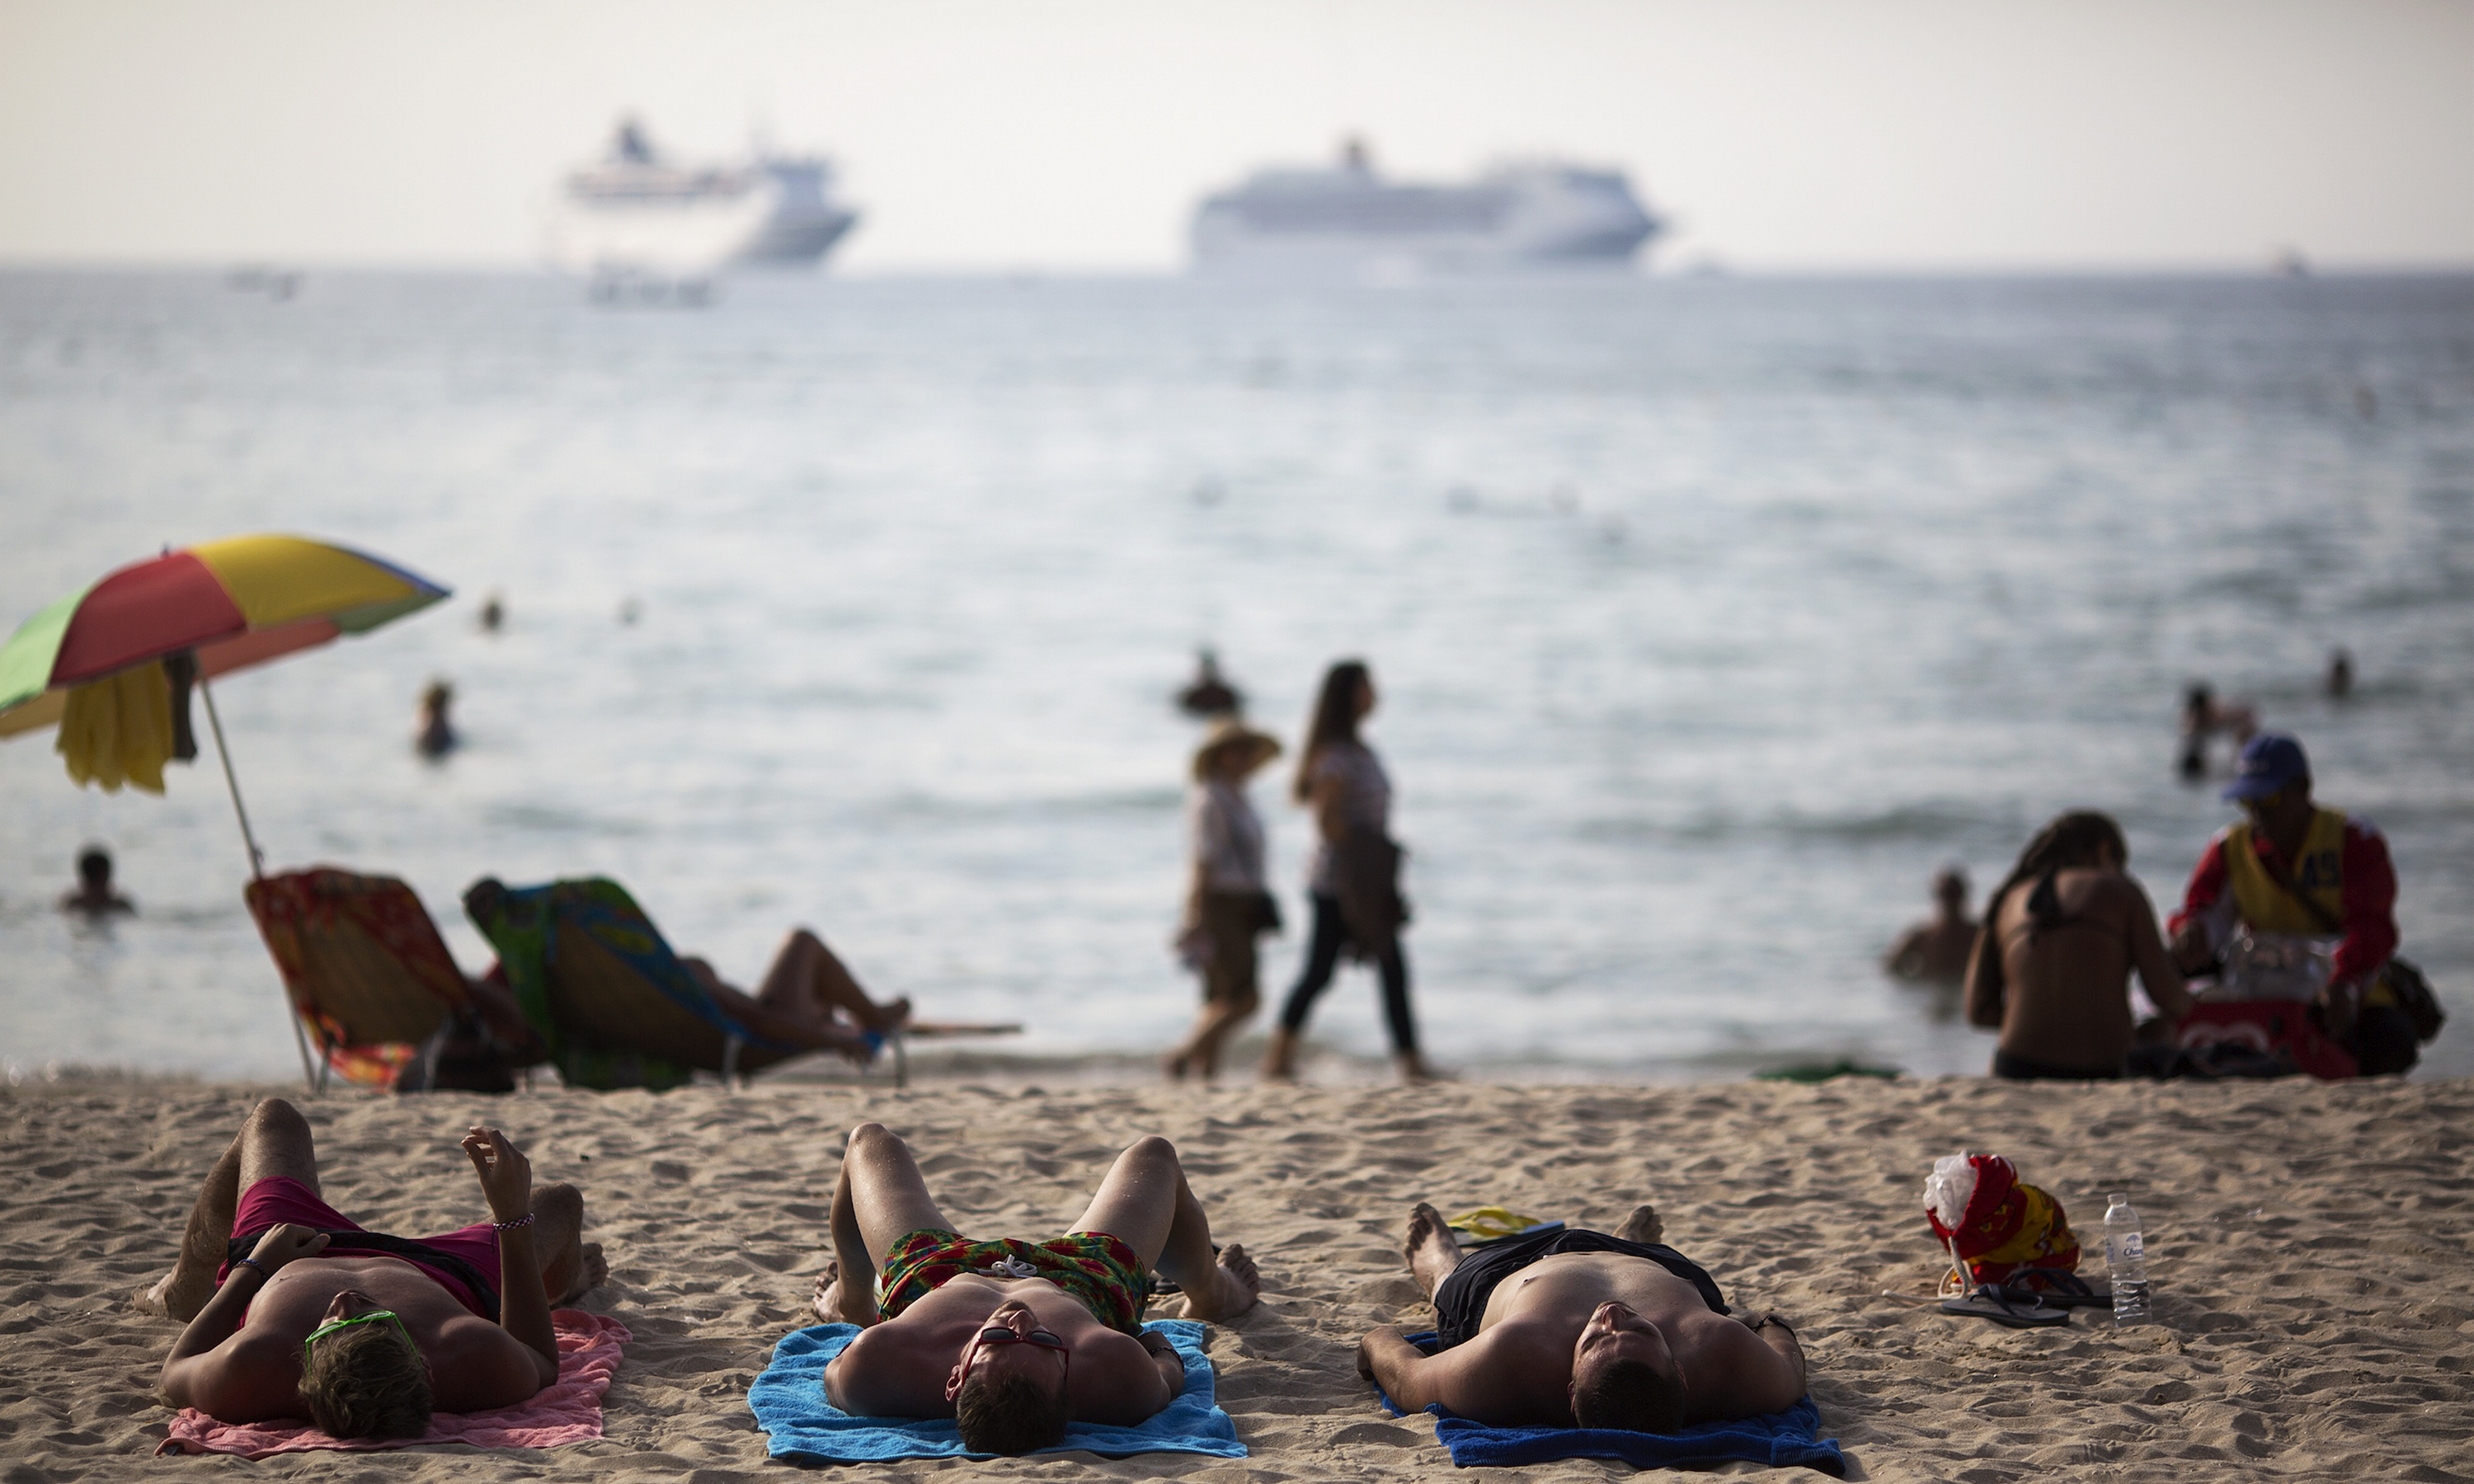 Tourists are seen at Patong beach which was badly hit by 2004 tsunami in Phuket, one of Asia's premier resort islands, December 15, 2014. In Thailand, over 5300 people were killed including several thousand foreign tourists,  in Indian Ocean Tsunami on December 26, 2004,  when the waves swamped six coastal provinces, turning some of the world's most beautiful beaches into mass graves.  REUTERS/Damir Sagolj (THAILAND - Tags: DISASTER ENVIRONMENT SOCIETY ANNIVERSARY) - RTR4IYQ0